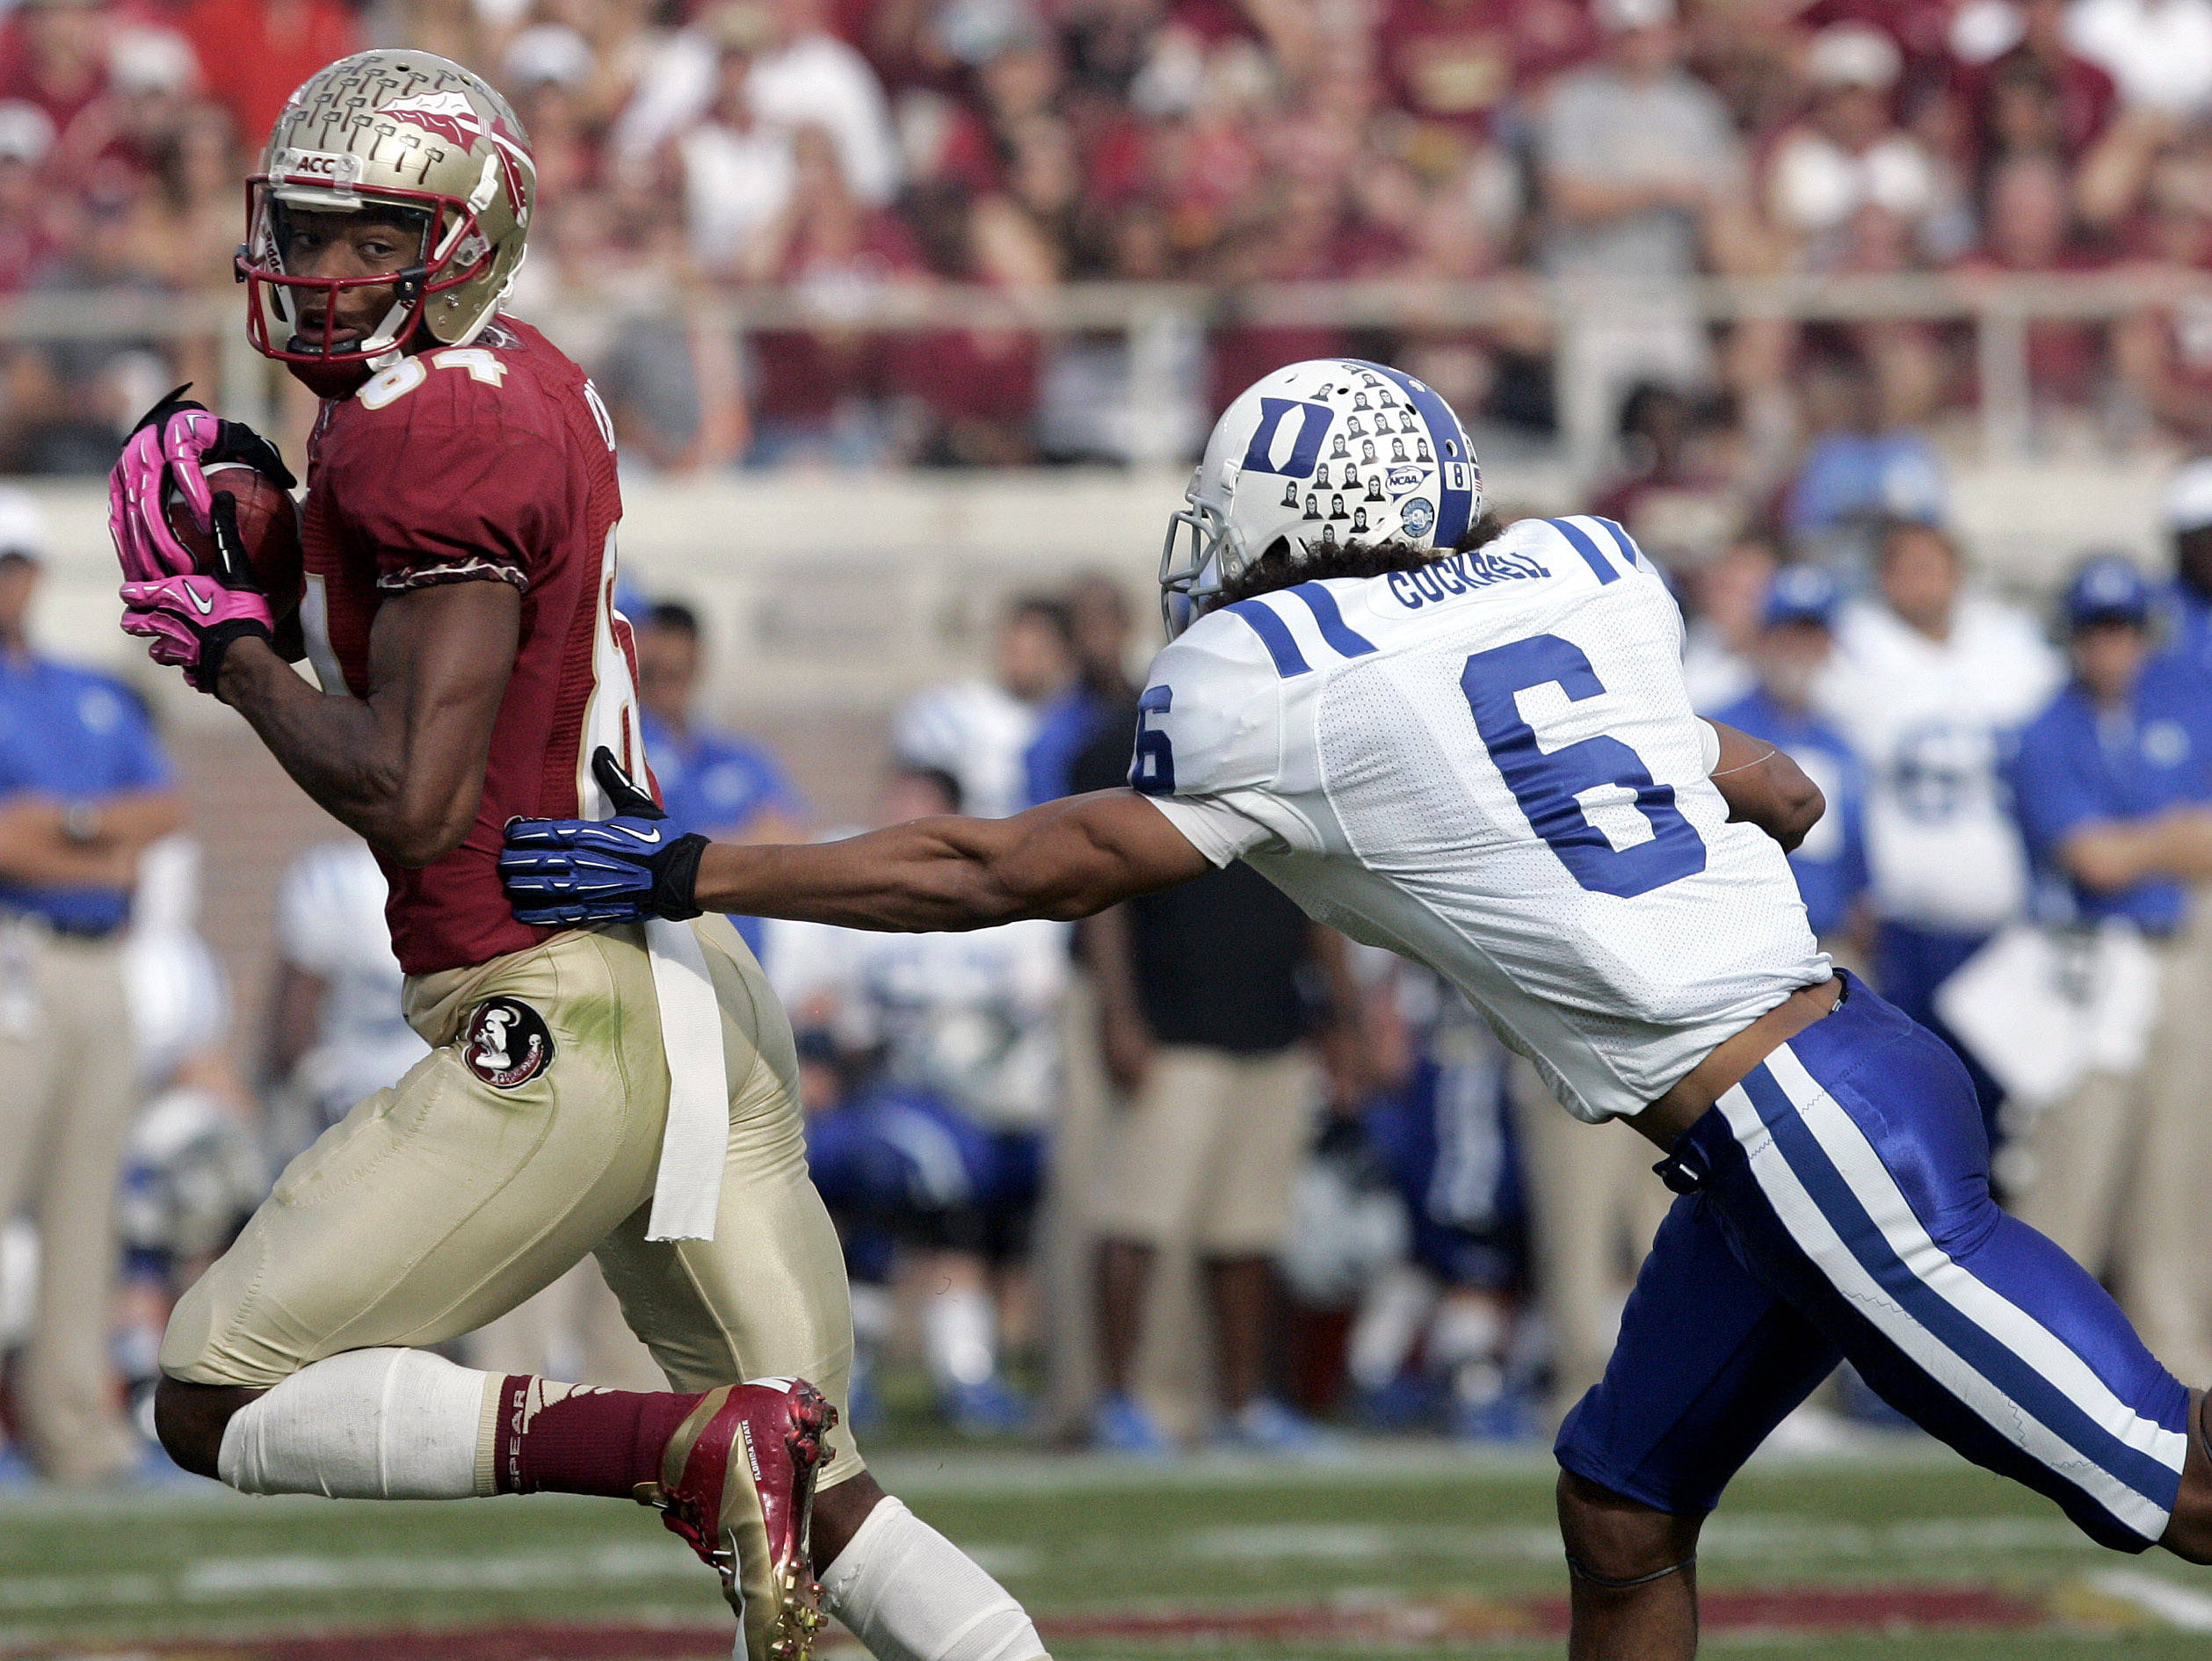 Florida State's Rodney Smith makes a long reception. (AP Photo/Steve Cannon)